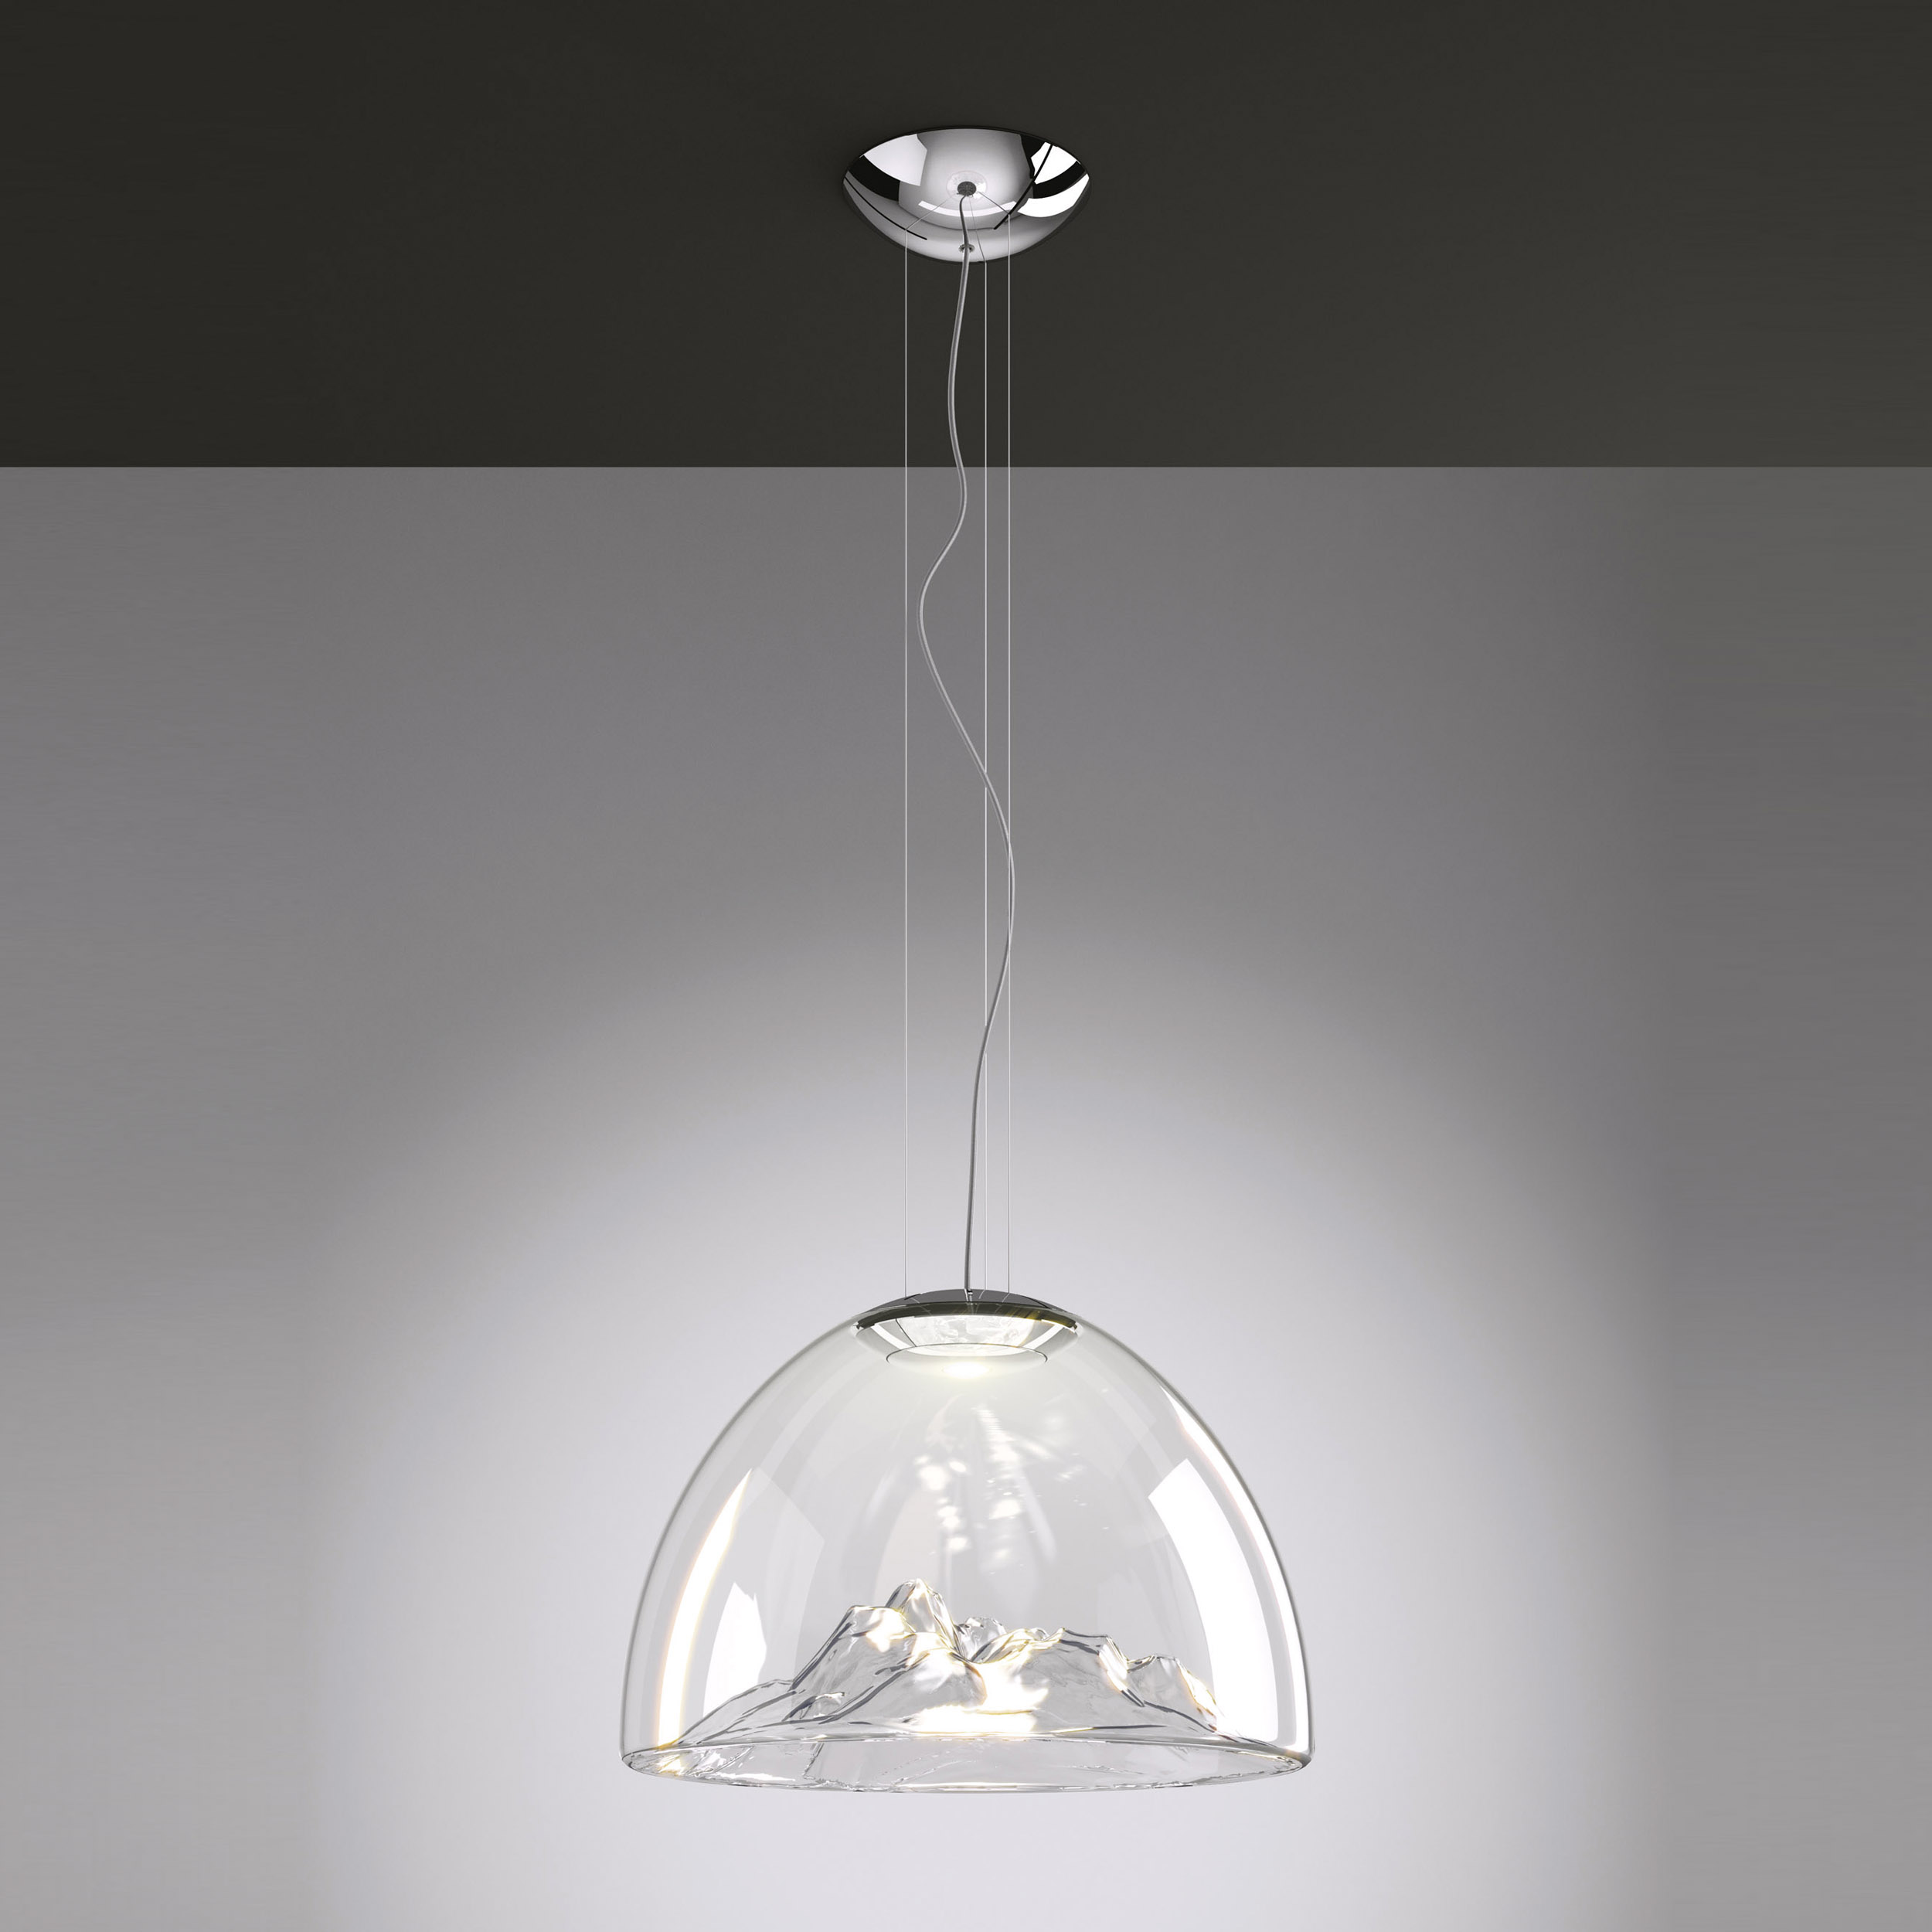 Axolight-Mountain-View-Pendant-Light-Crystal-Chrome-B